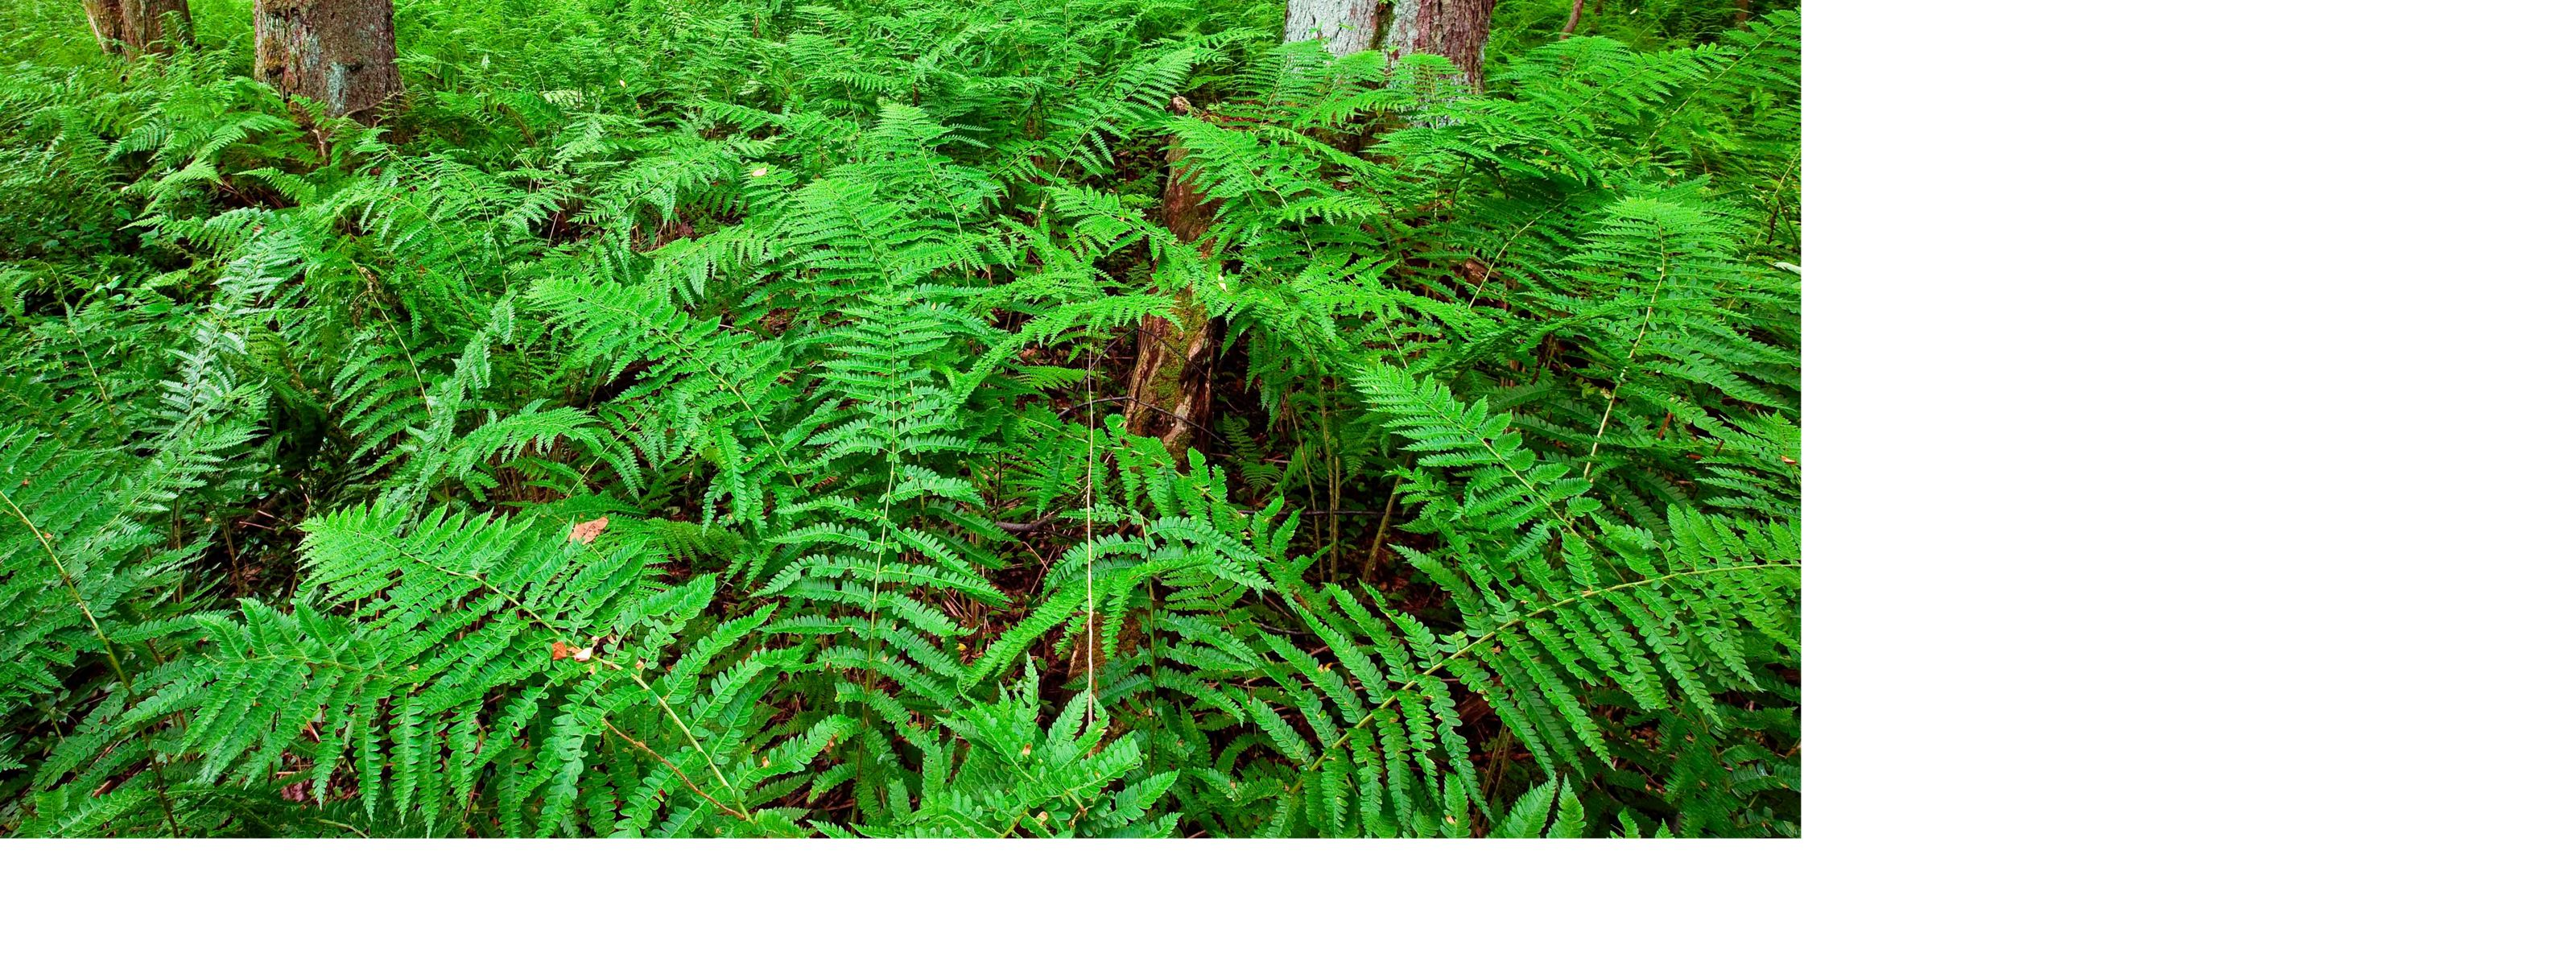 Ferns cover the woodland floor at The Nature Conservancy's Cranesville Swamp Preserve in northern West Virginia.